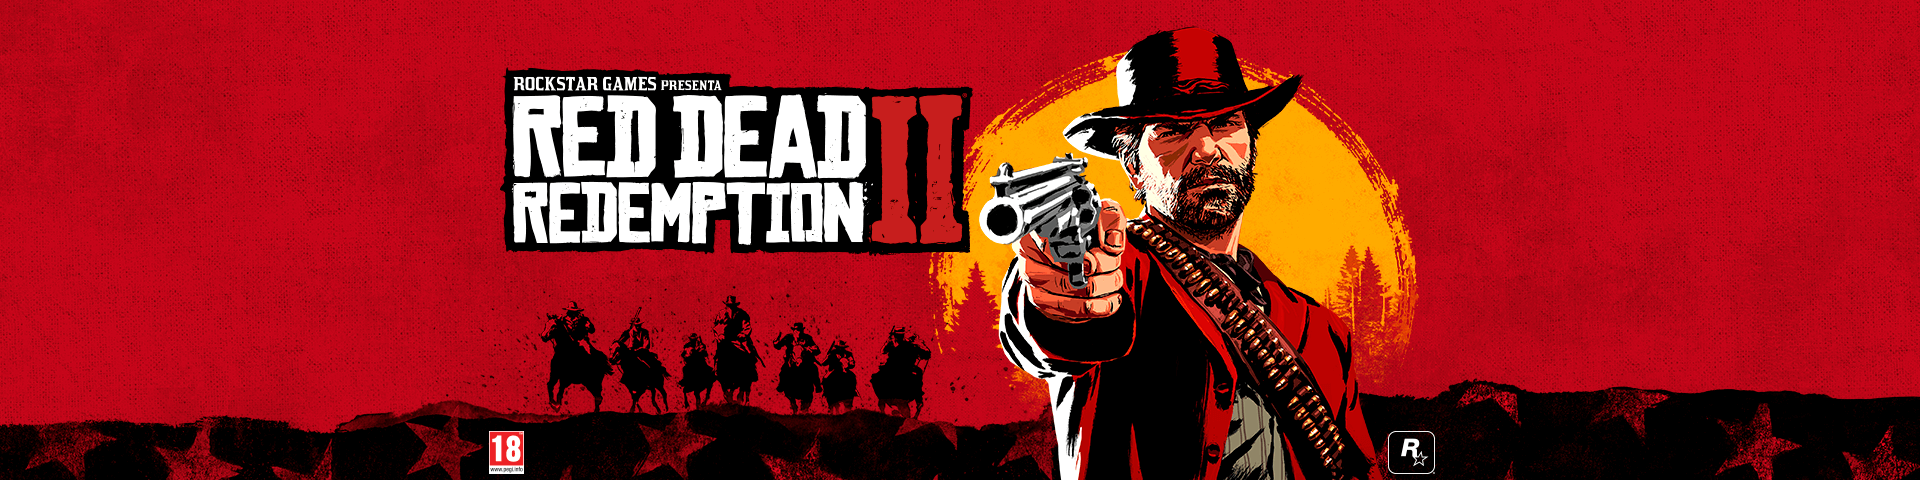 1834171RDR2_MediaMarkt_1920x480_MAY18_SPA